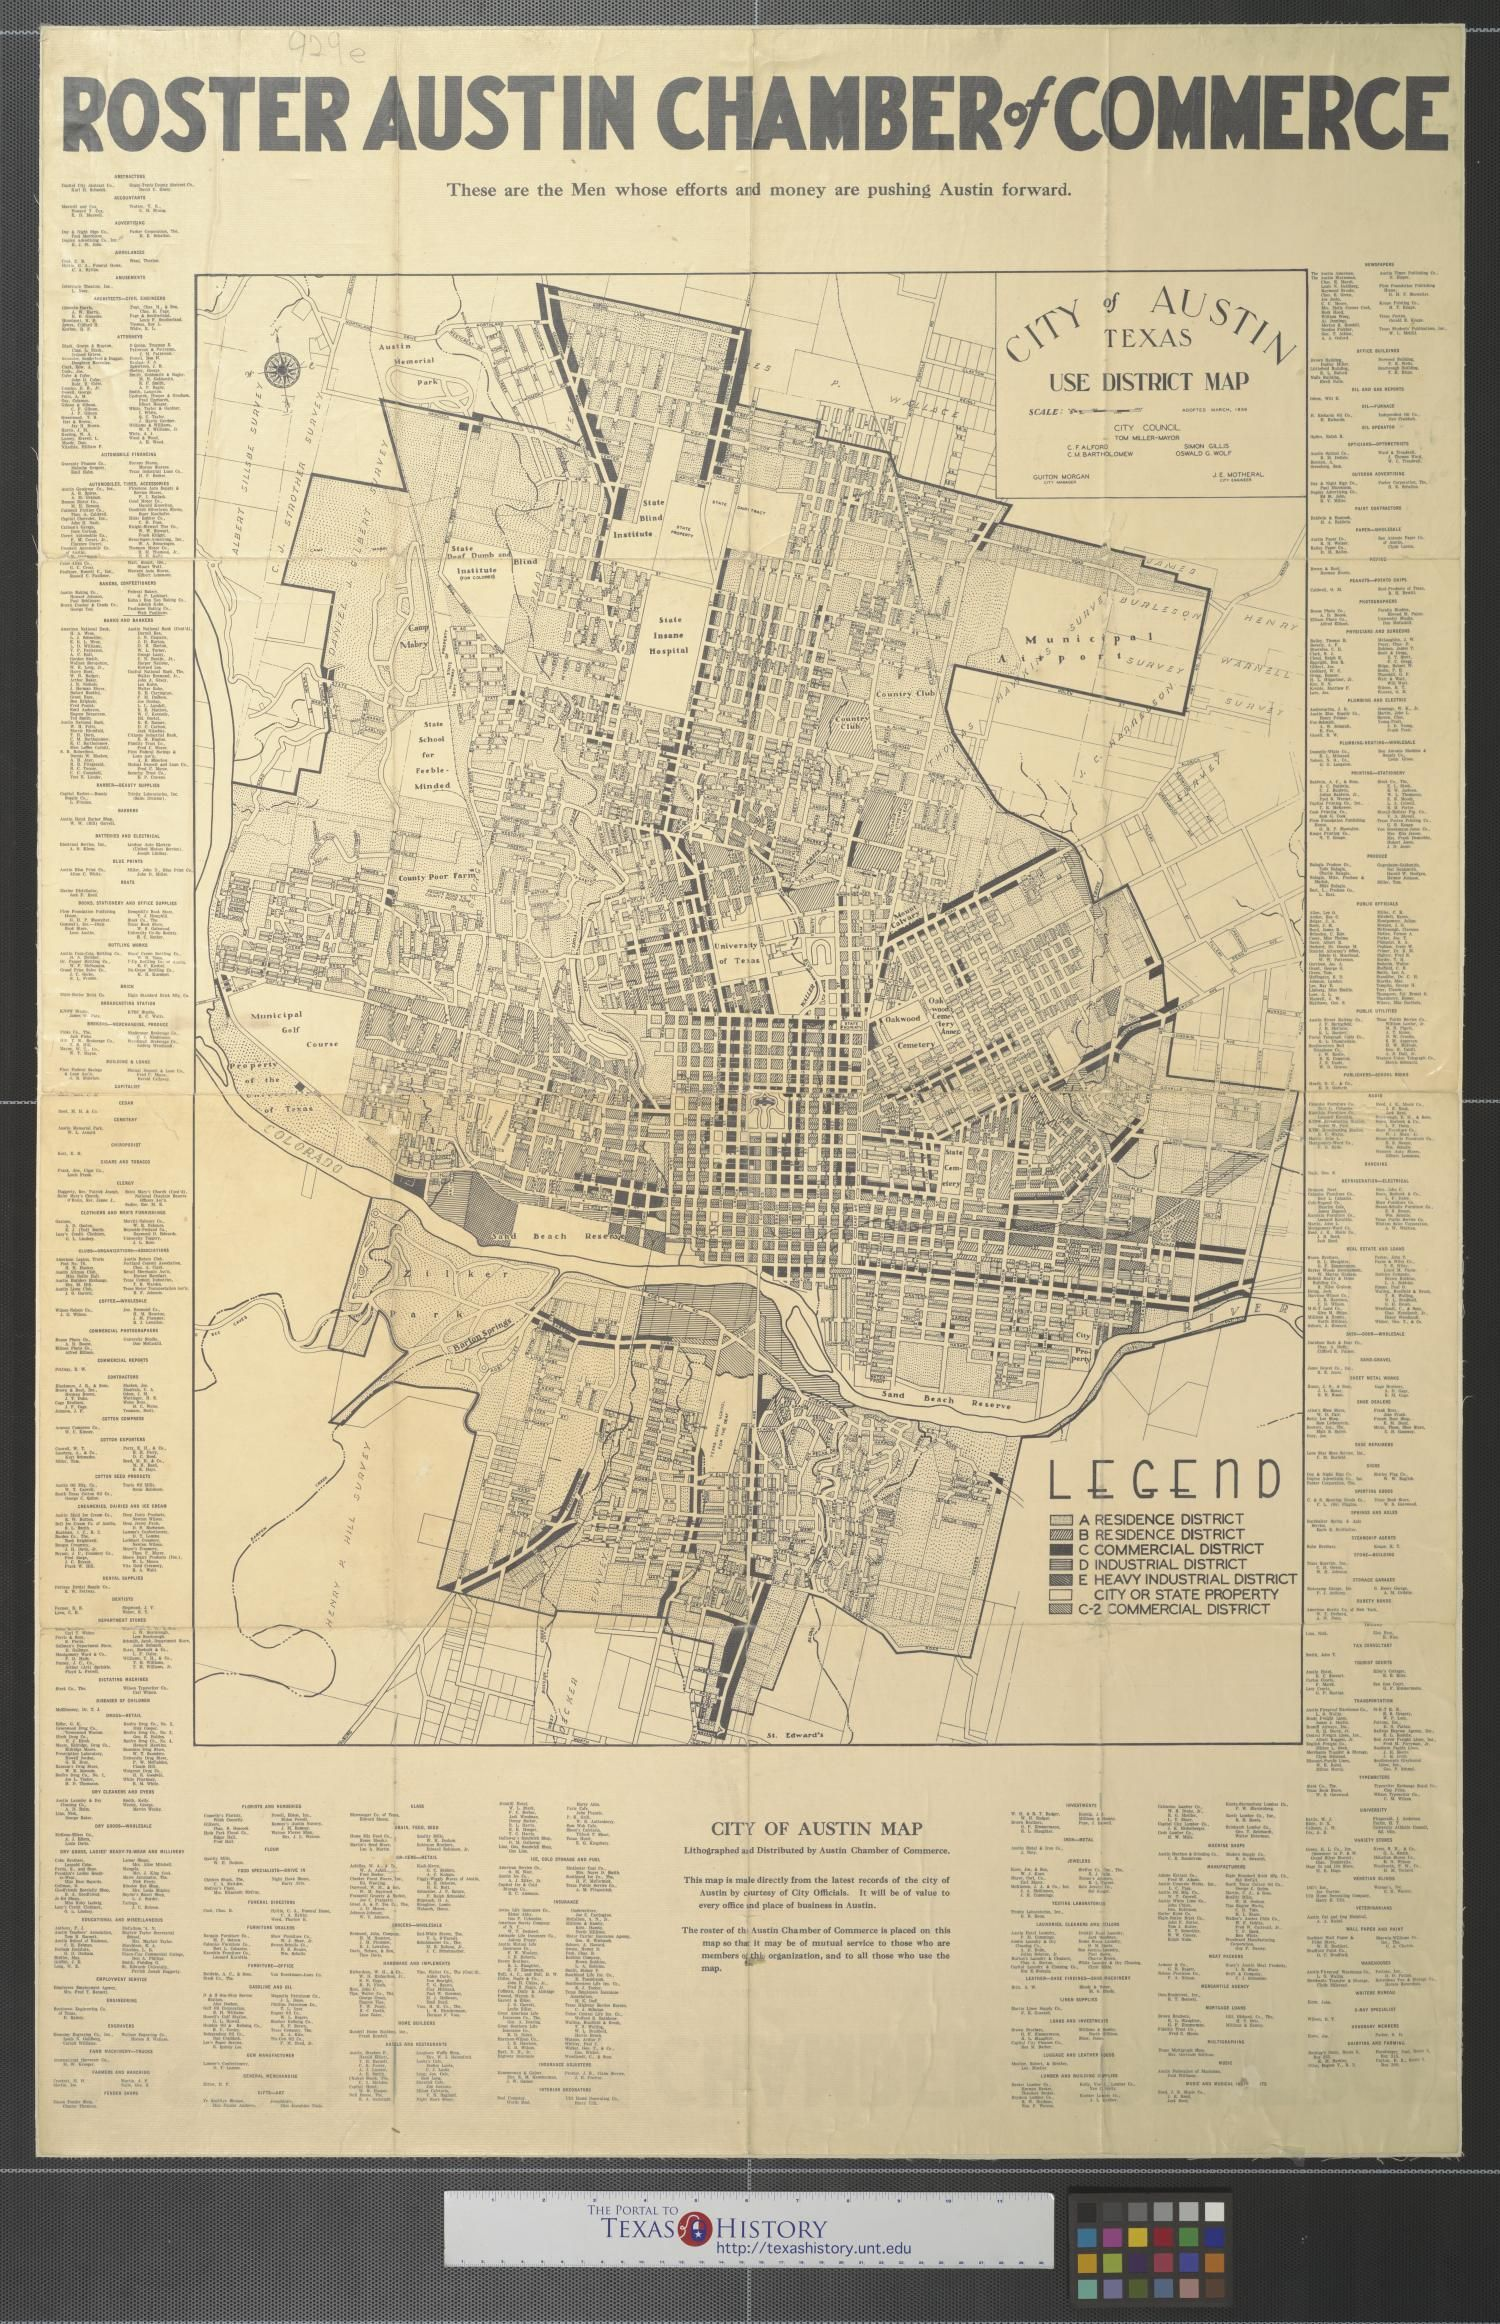 City Of Austin Texas Use District Map Map 1939 Austin Egypt Map Map Old Map